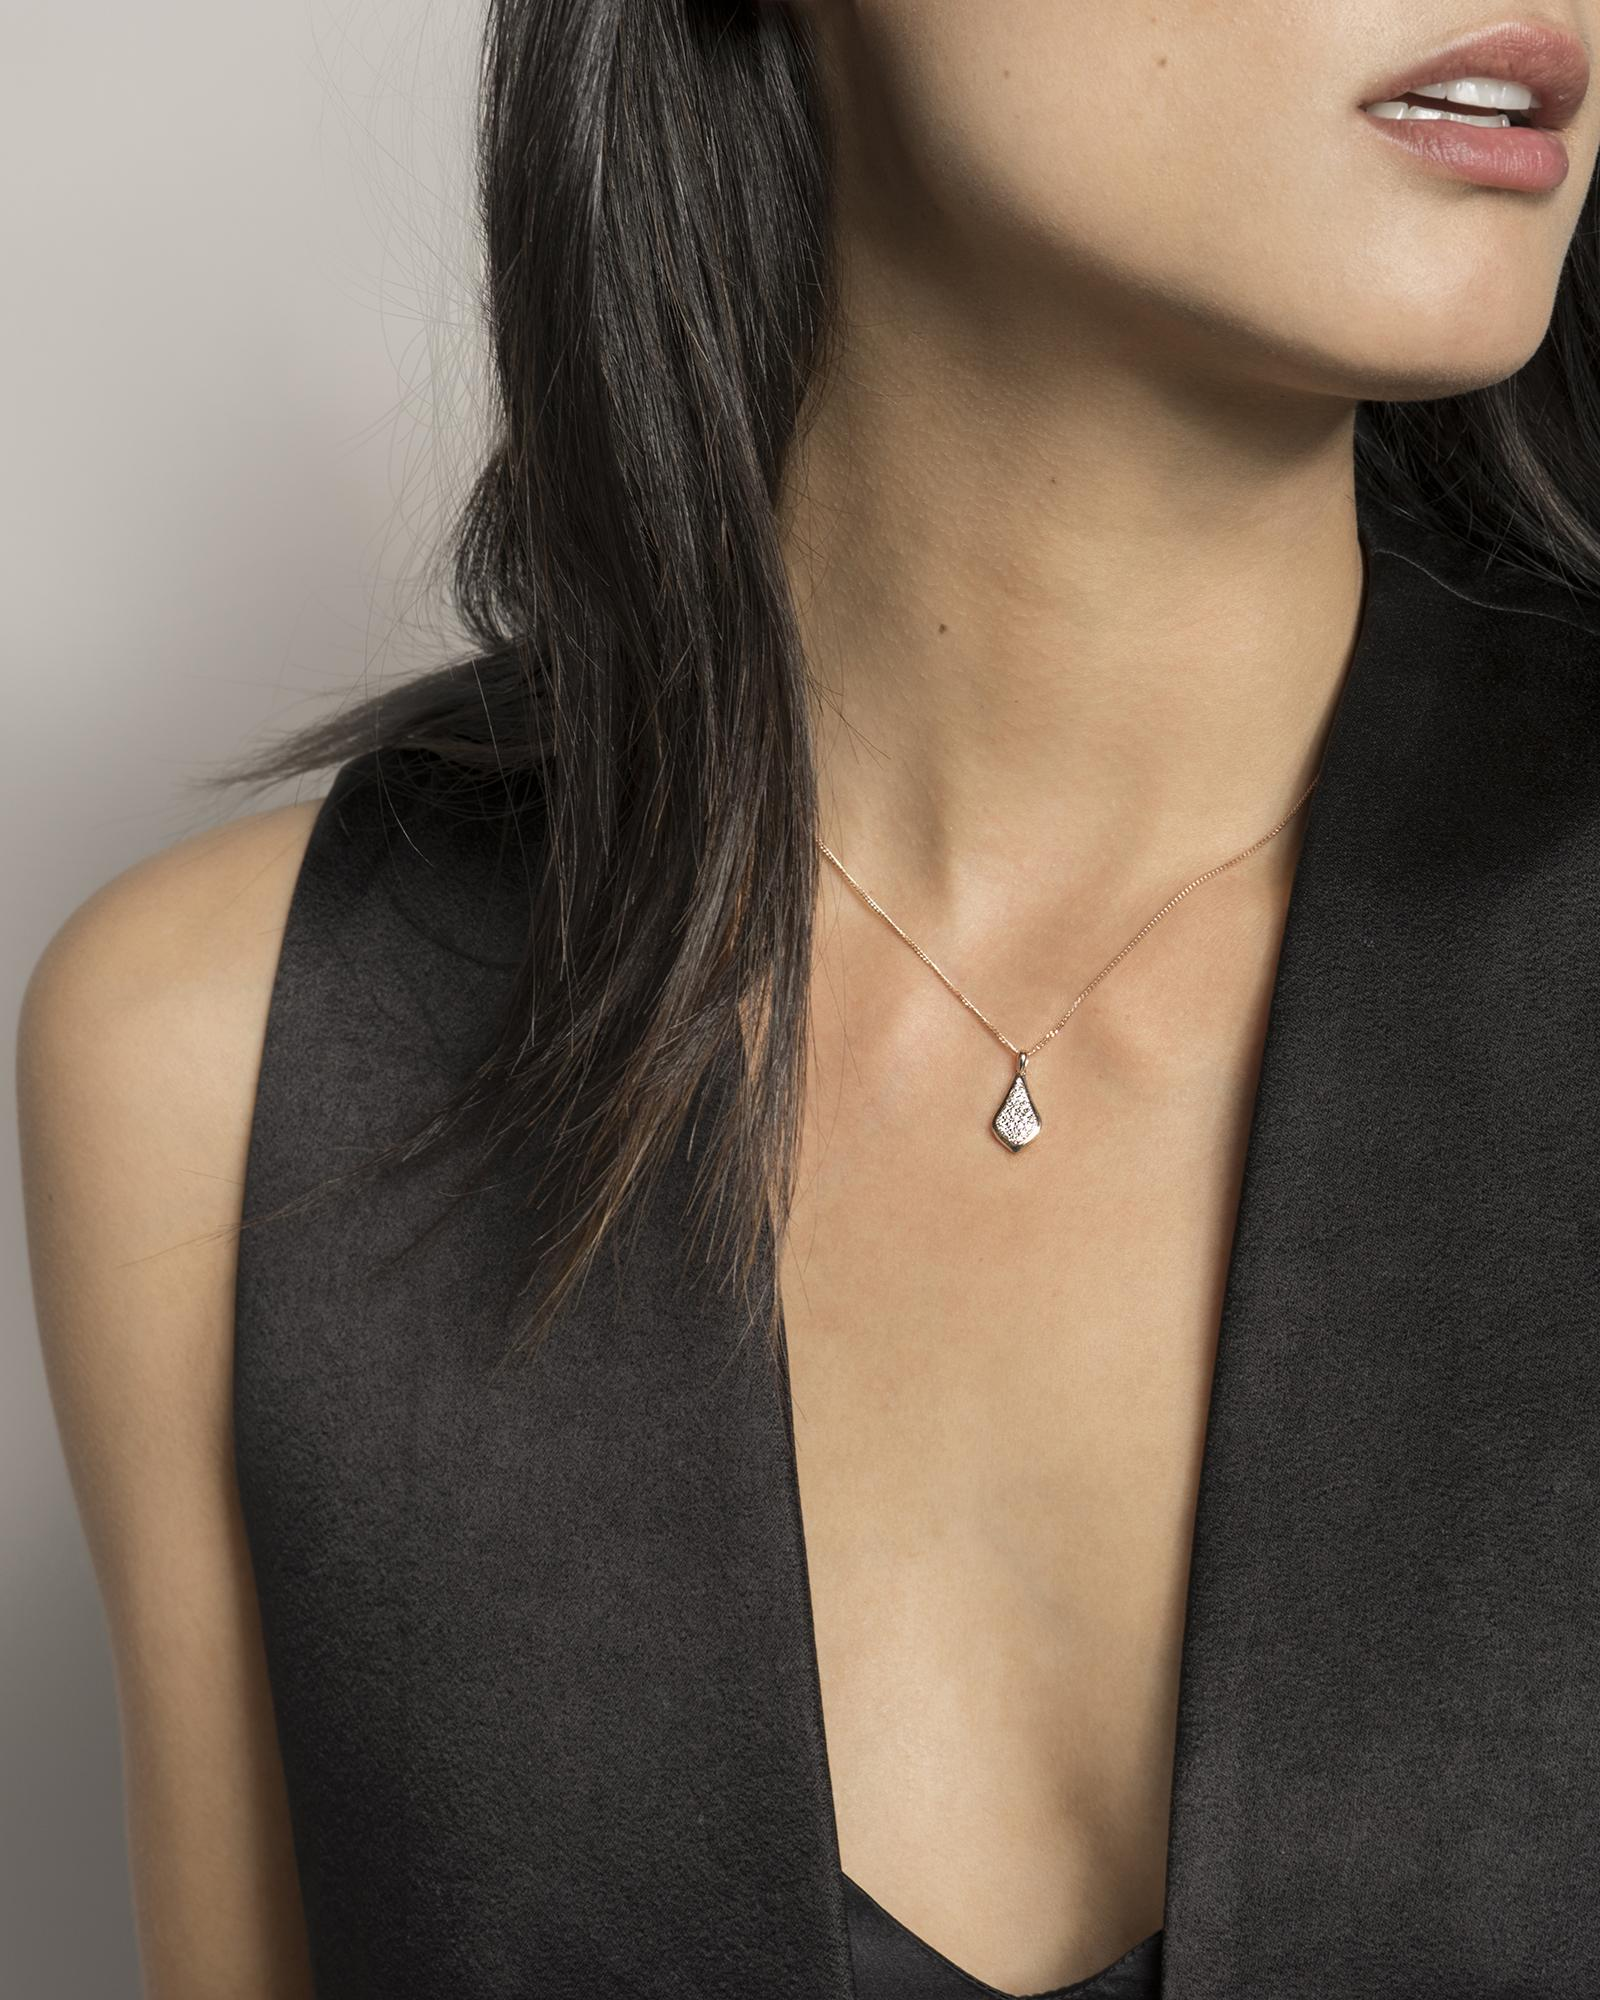 Lela Pendant Necklace in Pave Diamond and 14k White Gold